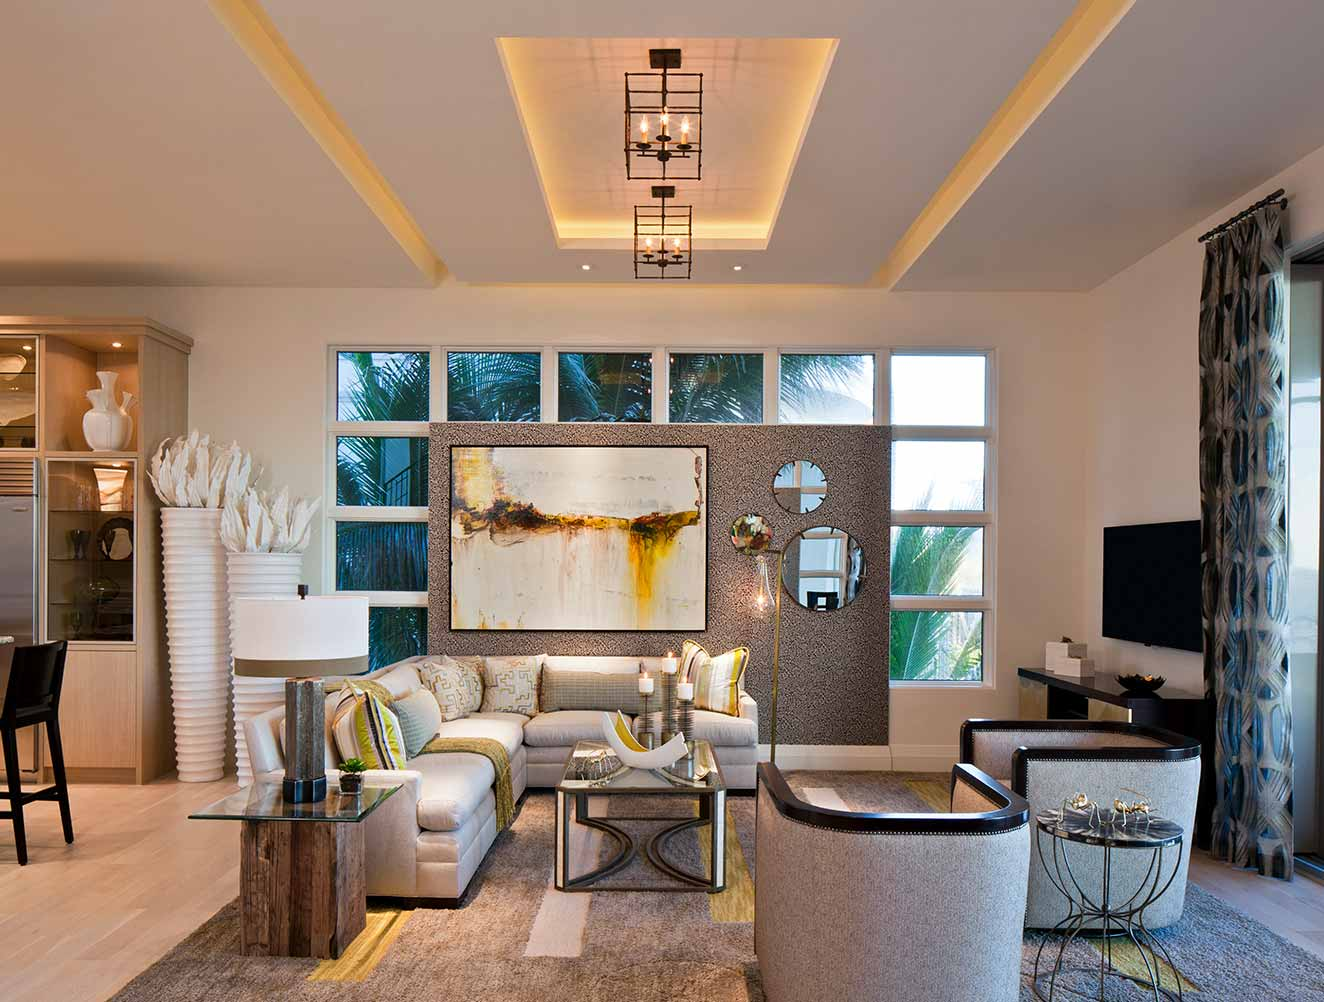 Family Room Ceiling Design Collection in Naples Florida homes. Designed by Kukk Architecture & Design Naples.